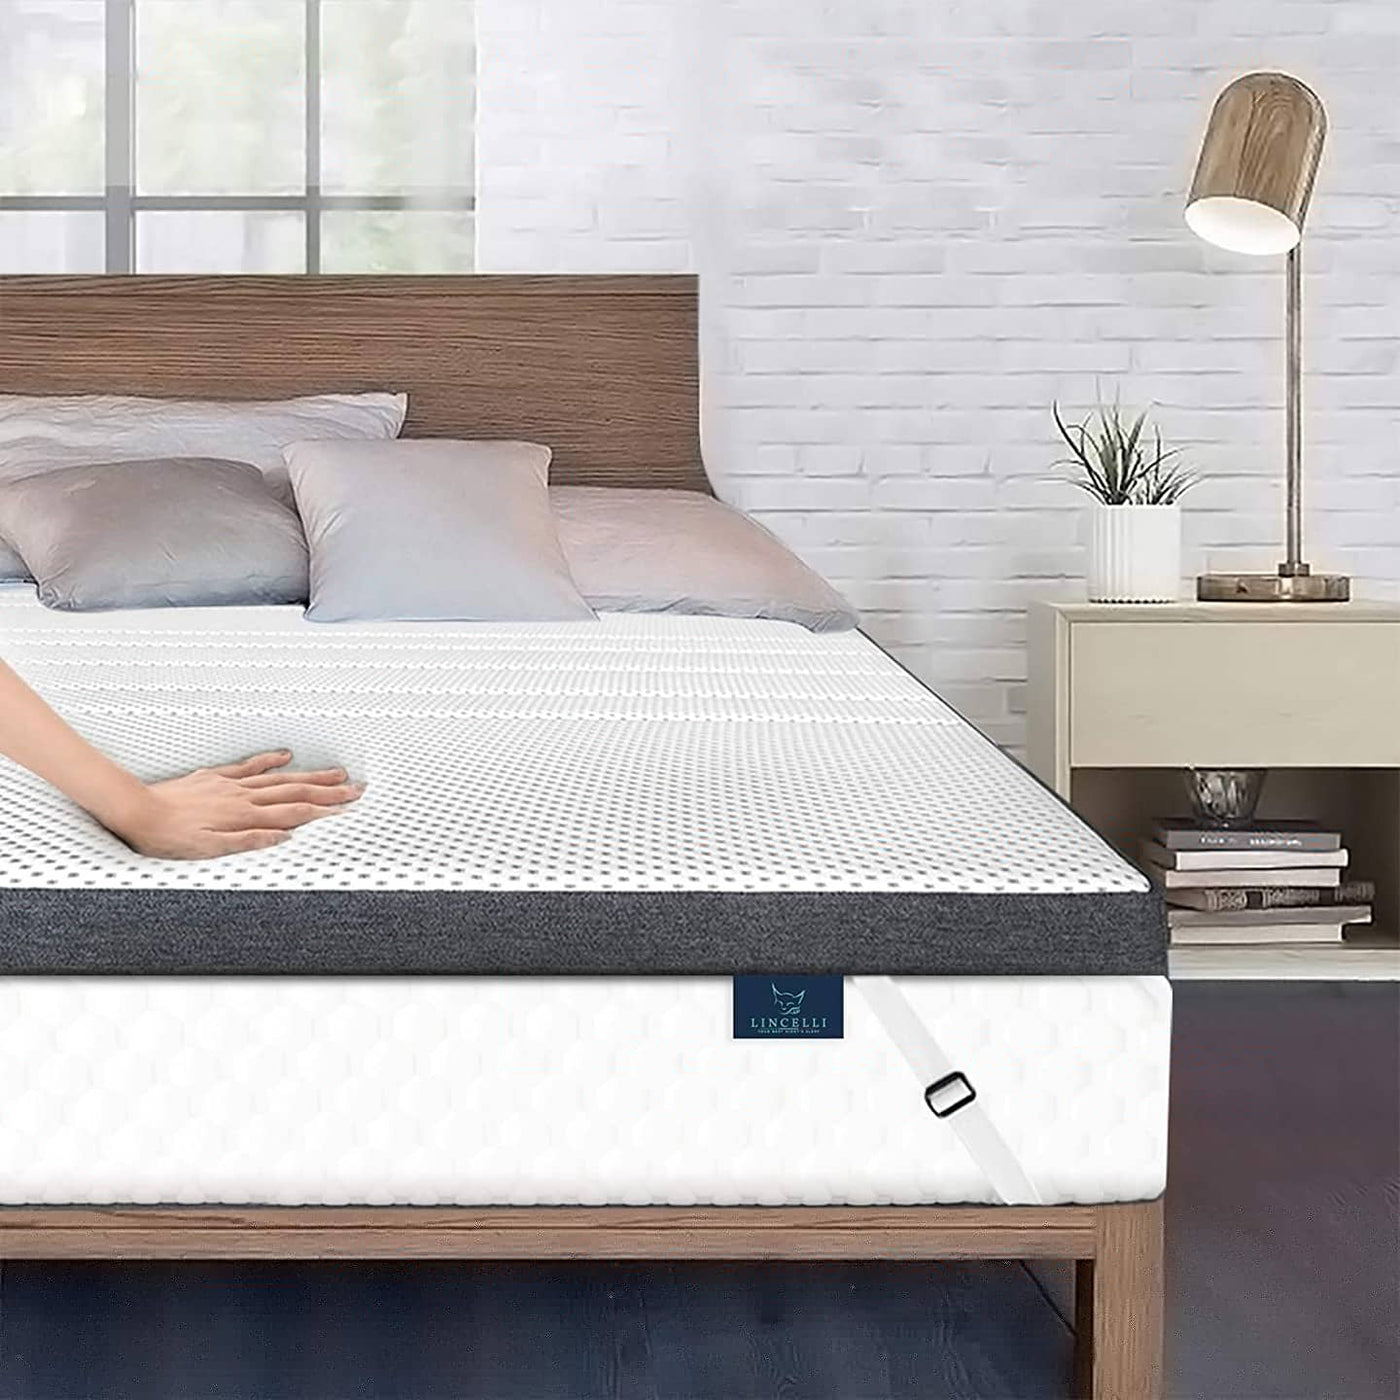 Lincelli is Italian luxury brand for bedding product, covering mattress topper pillow that offers you the best night sleep we are have Amazon store covering USA north america clients and we have antibacteria Gel-infused technology work well in covid envir